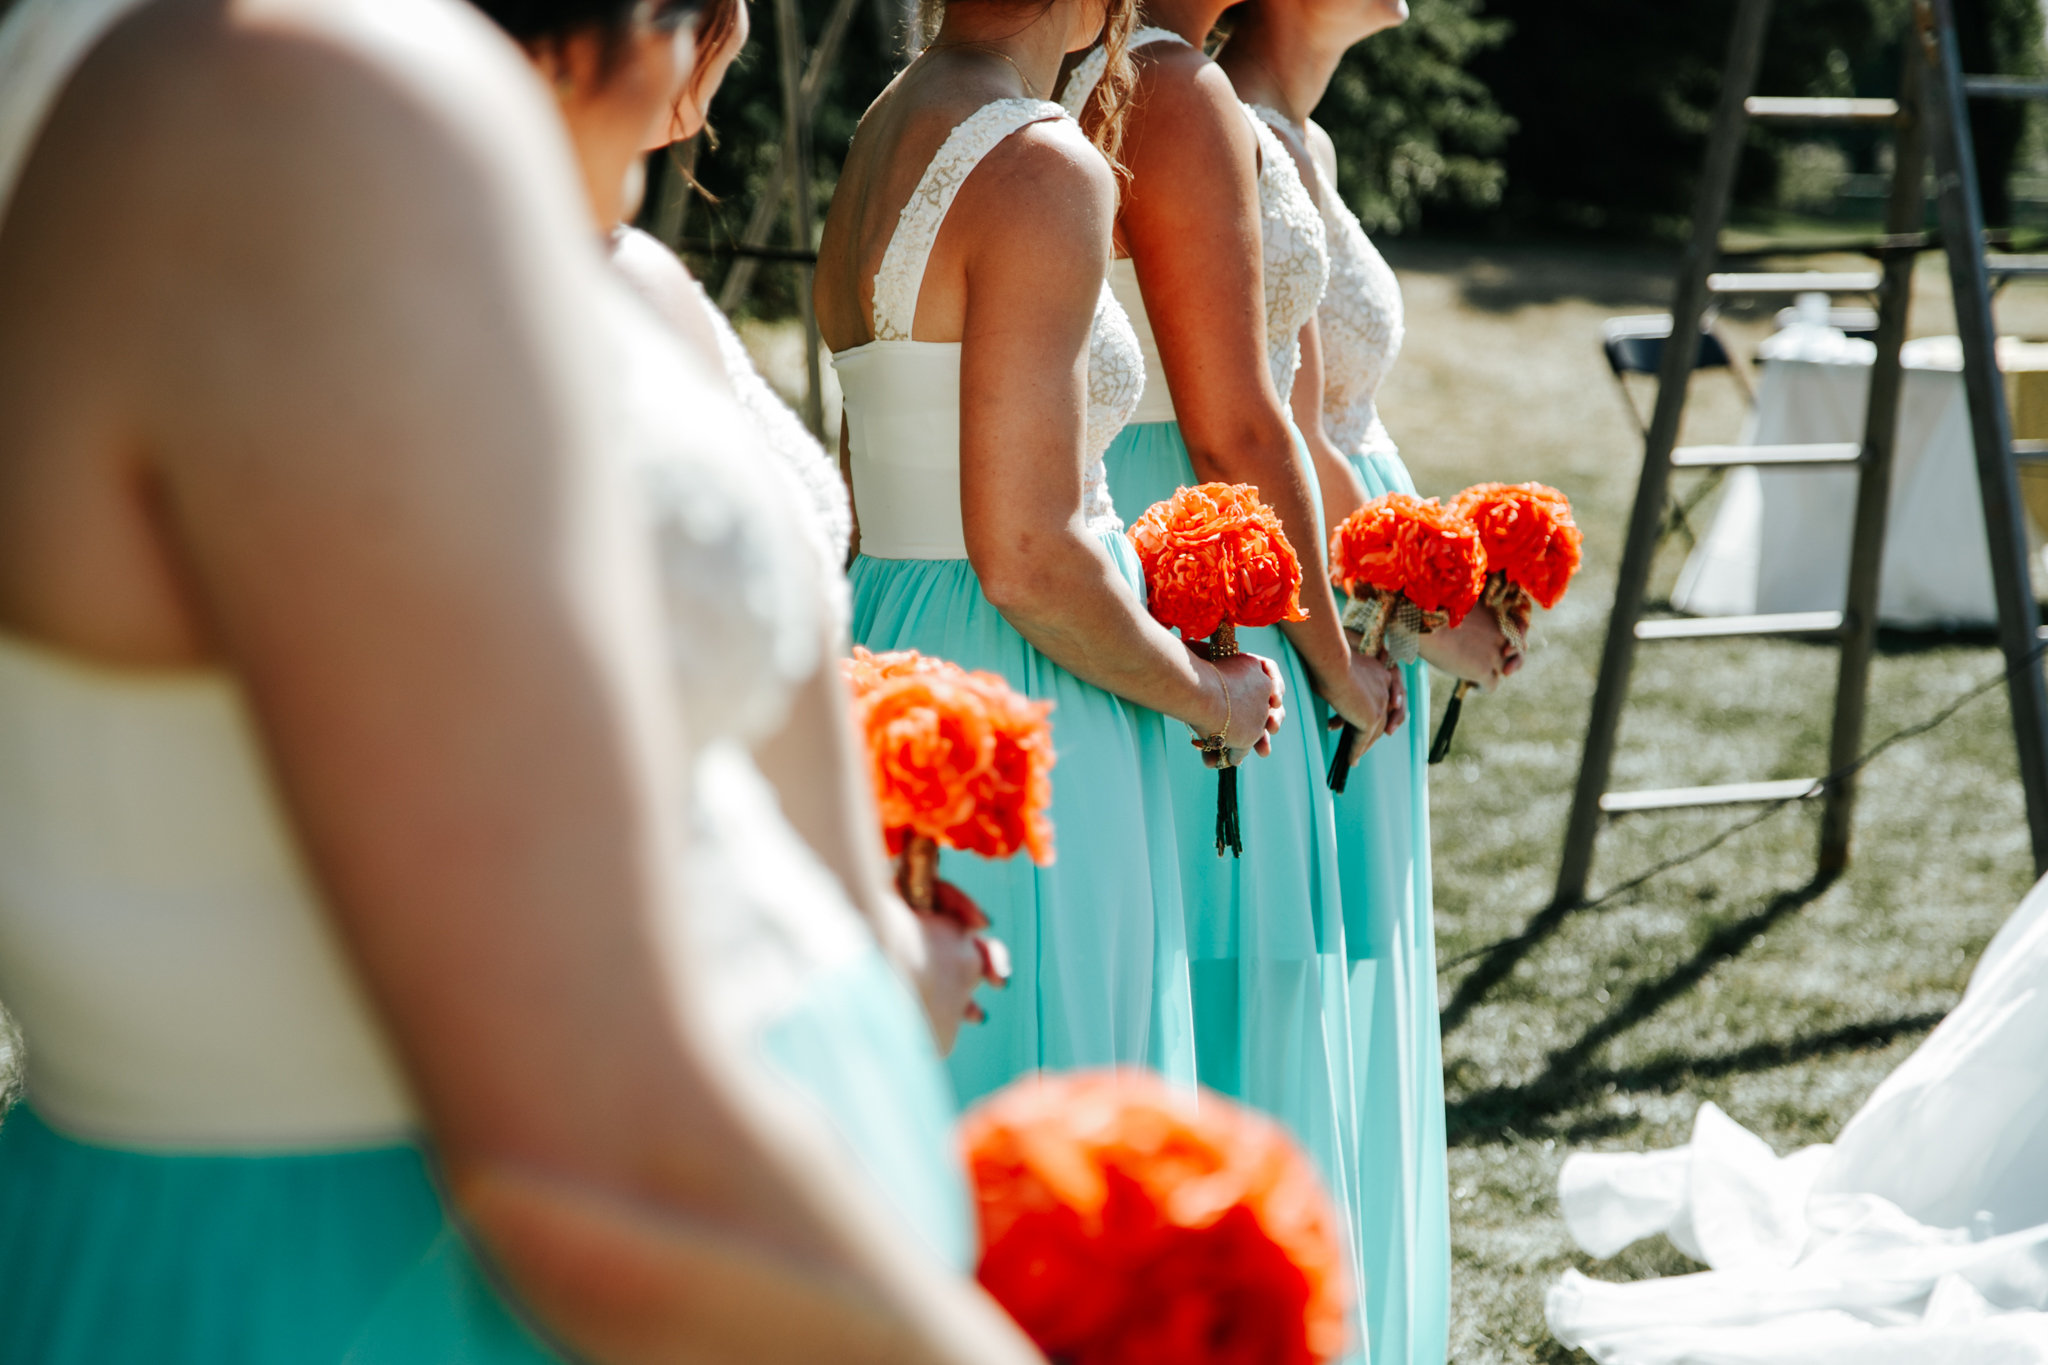 lethbridge-wedding-photography-love-and-be-loved-photographer-sean-sharla-henderson-lake-wedding-image-picture-photo-35.jpg